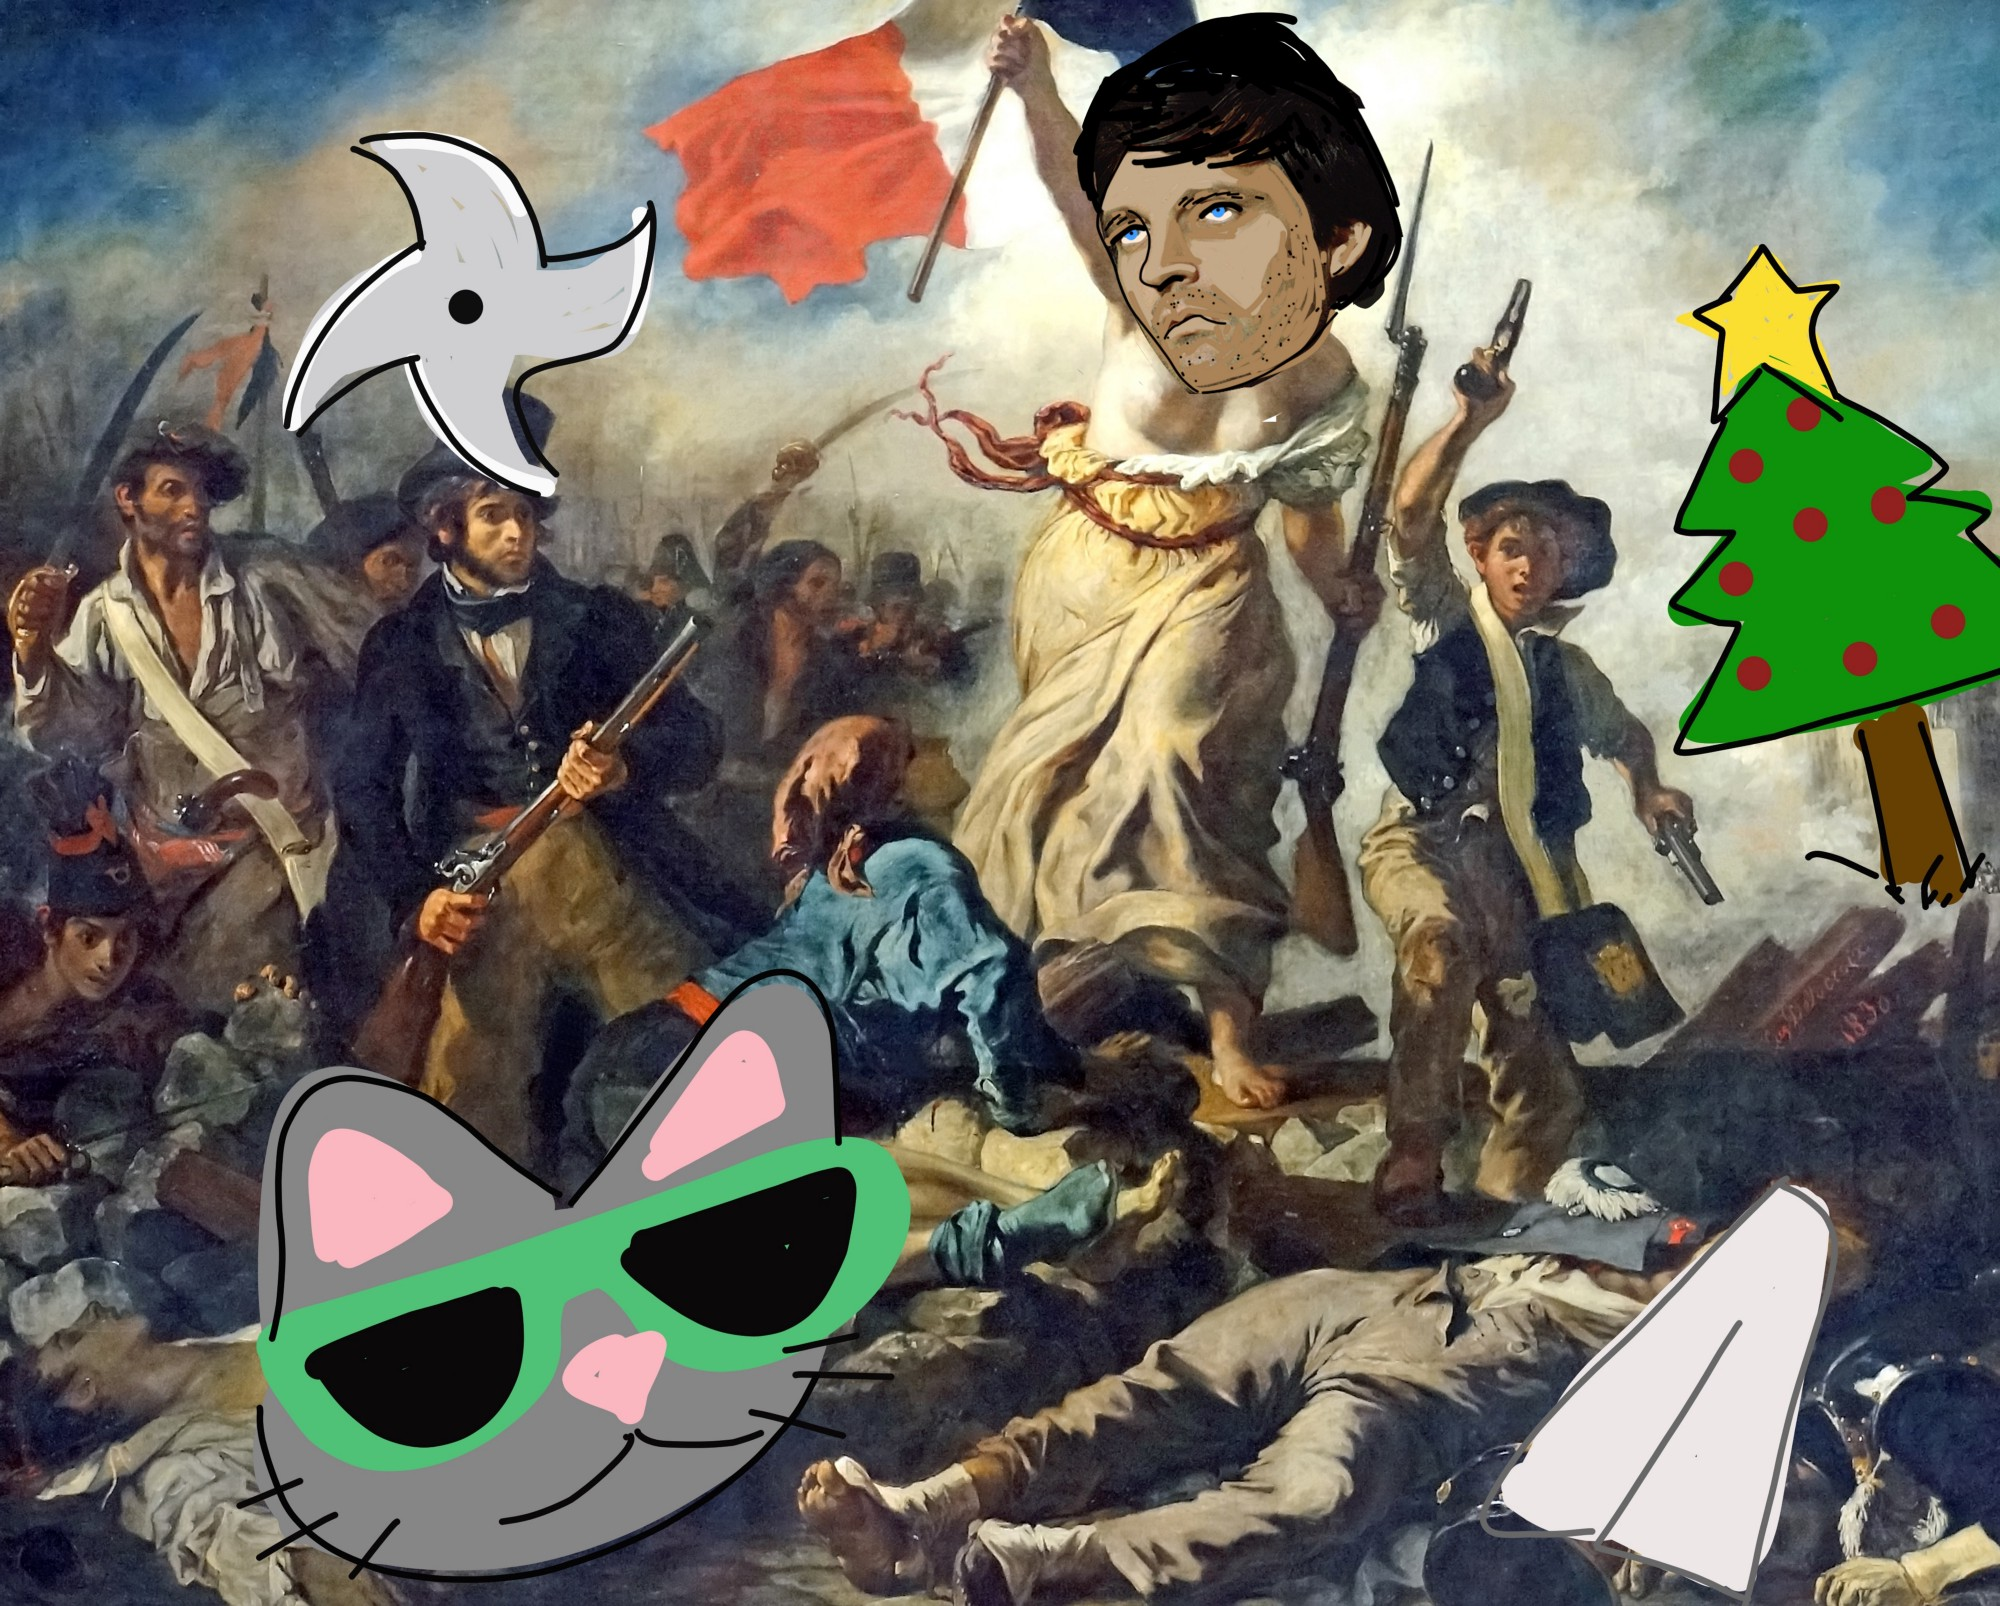 Delacroix's Liberty Leading the People, with cat, tree, throwing star, napkin, and Alan Alda